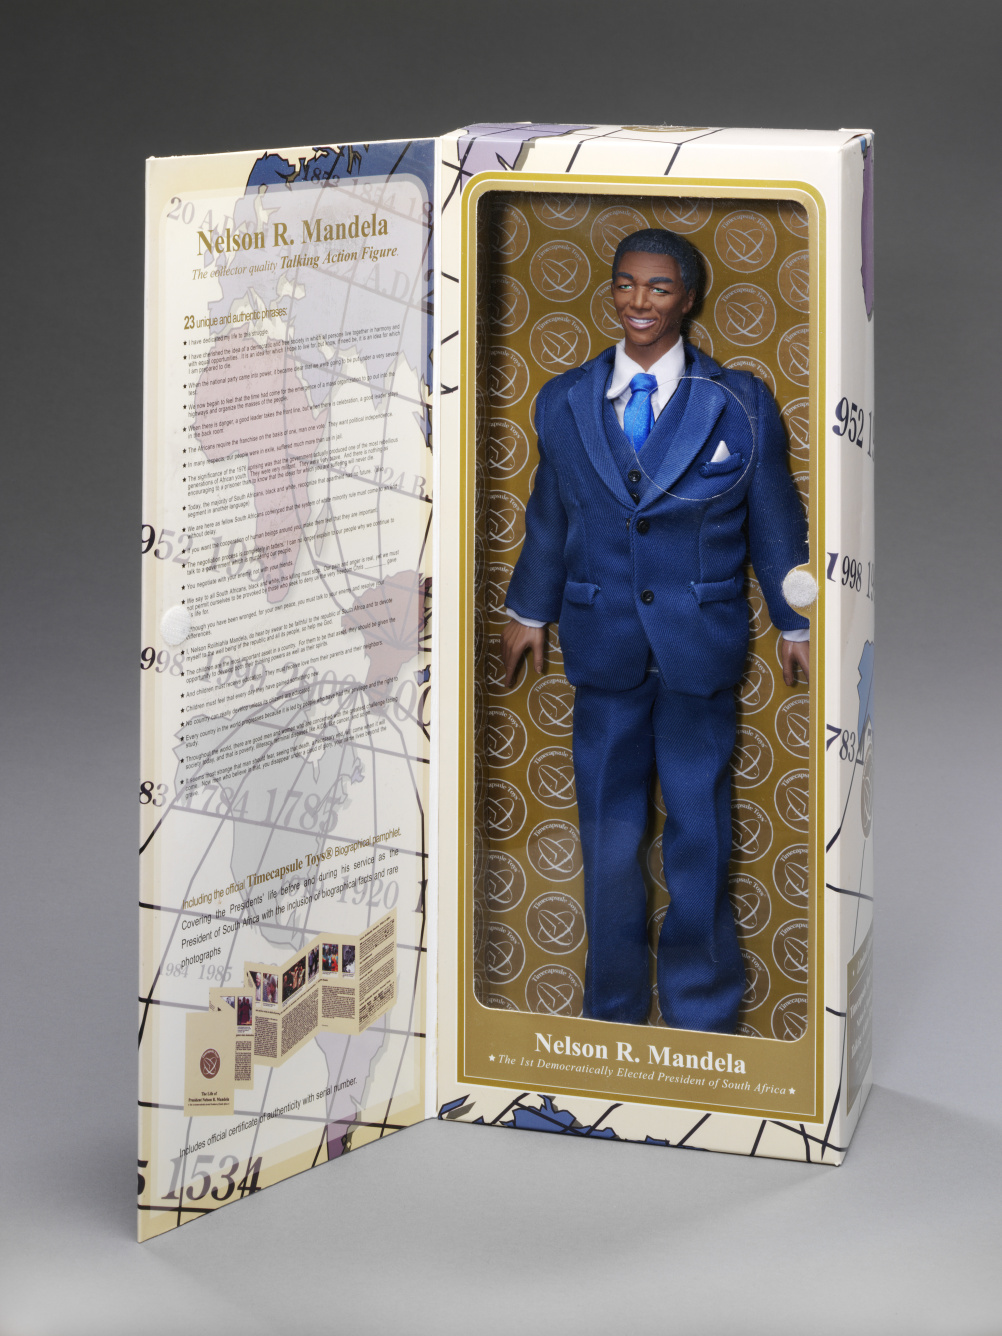 Nelson Mandela talking action figure